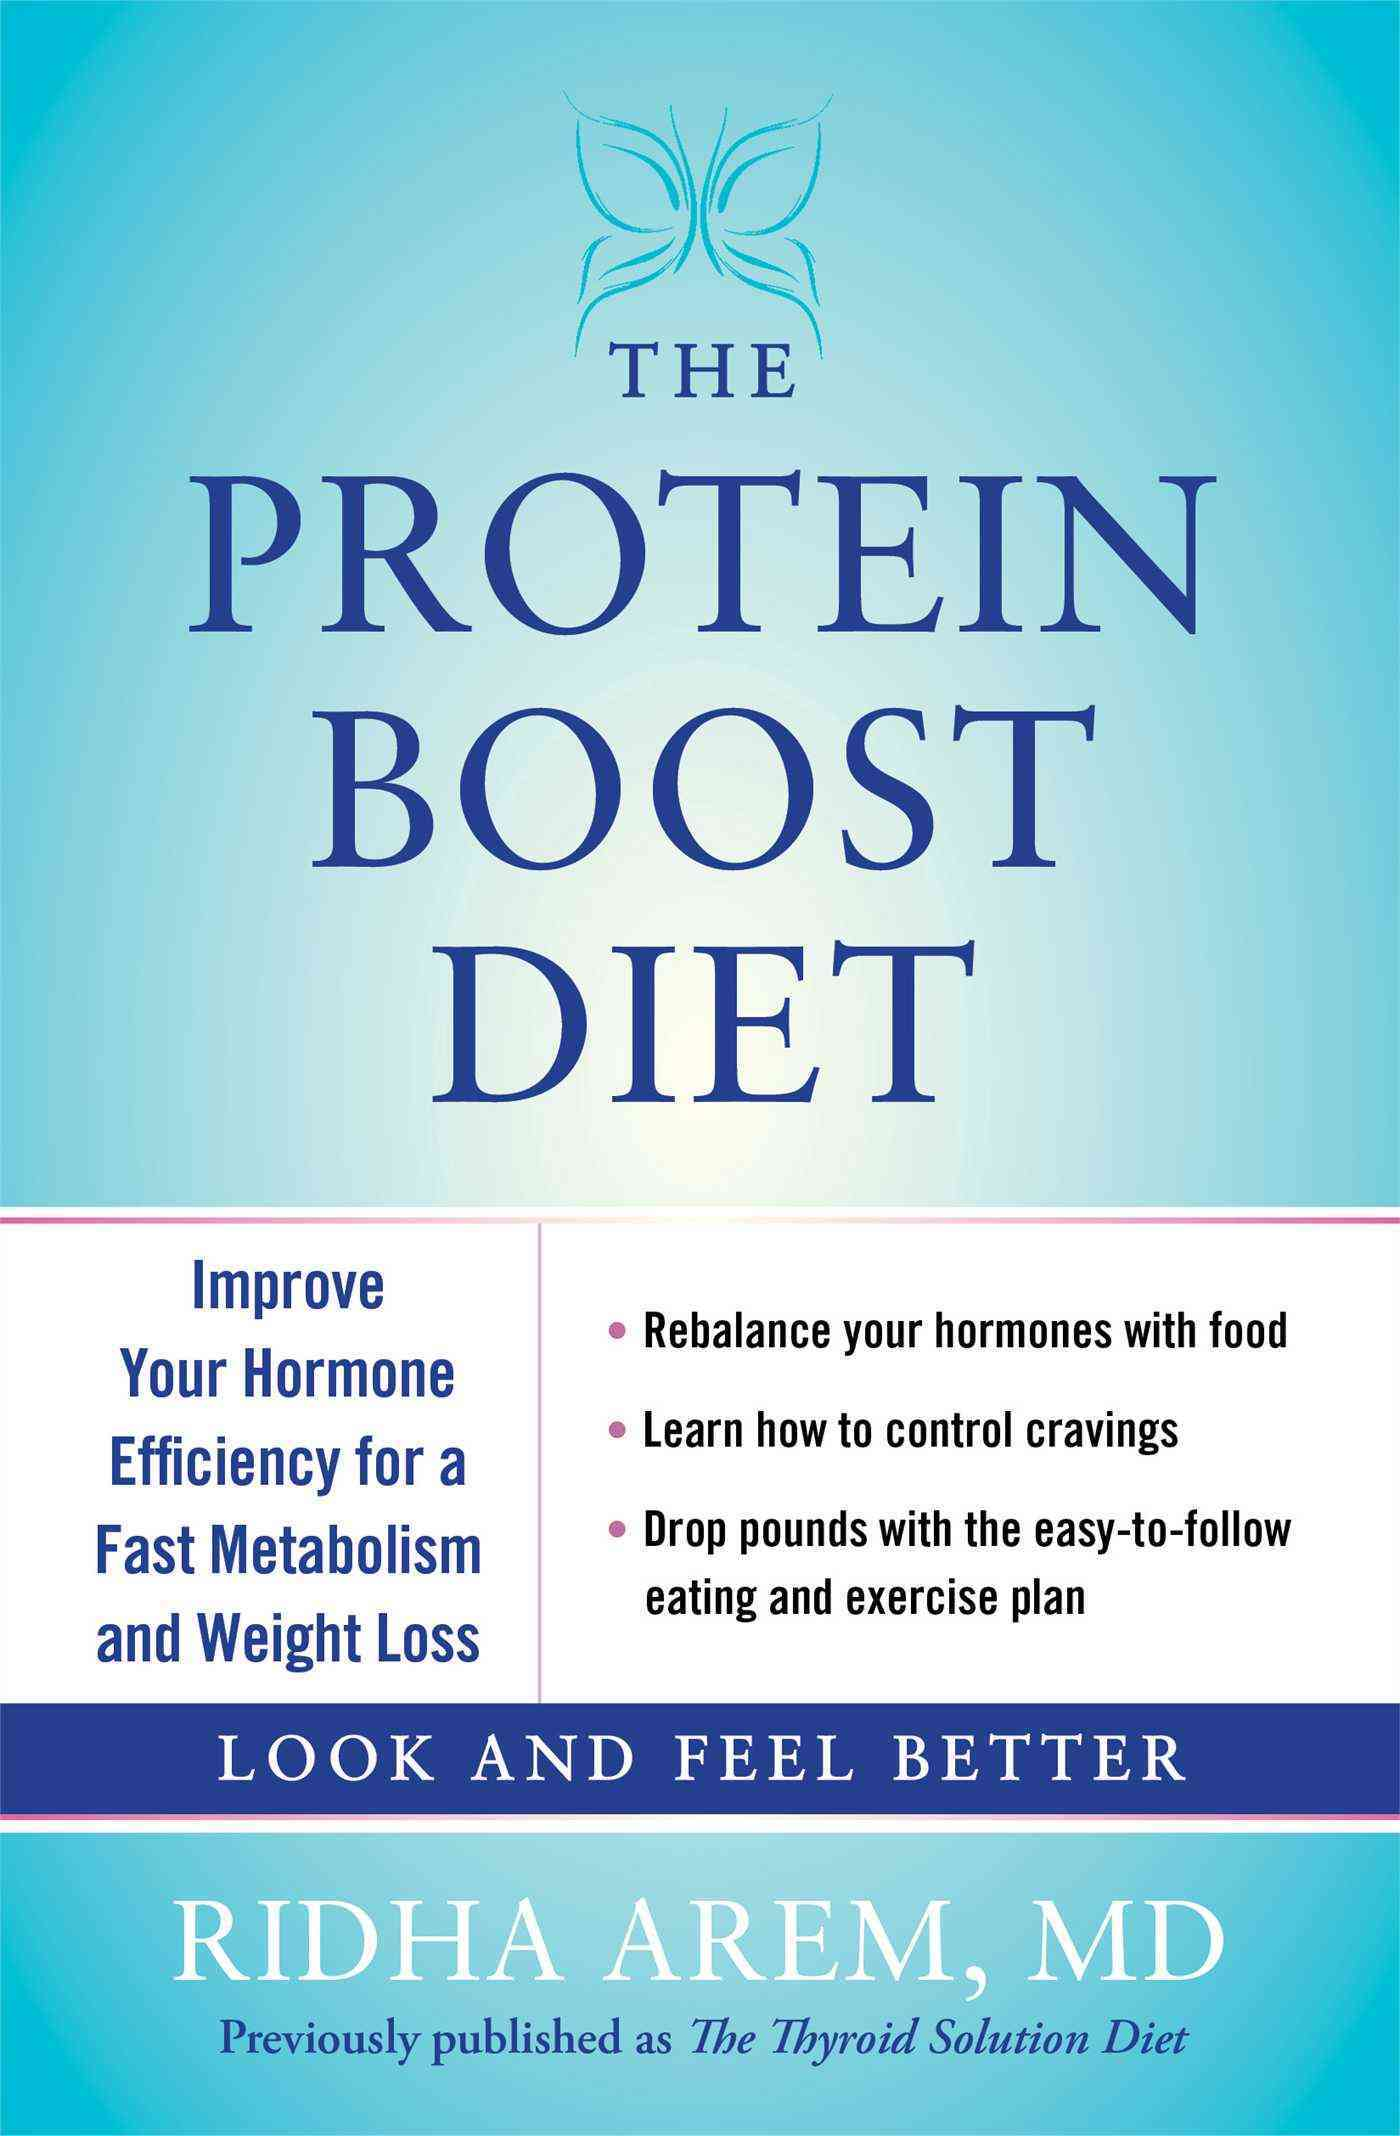 ... Diet: Improve Your Hormone Efficiency for a Fast Metabolism and Weight